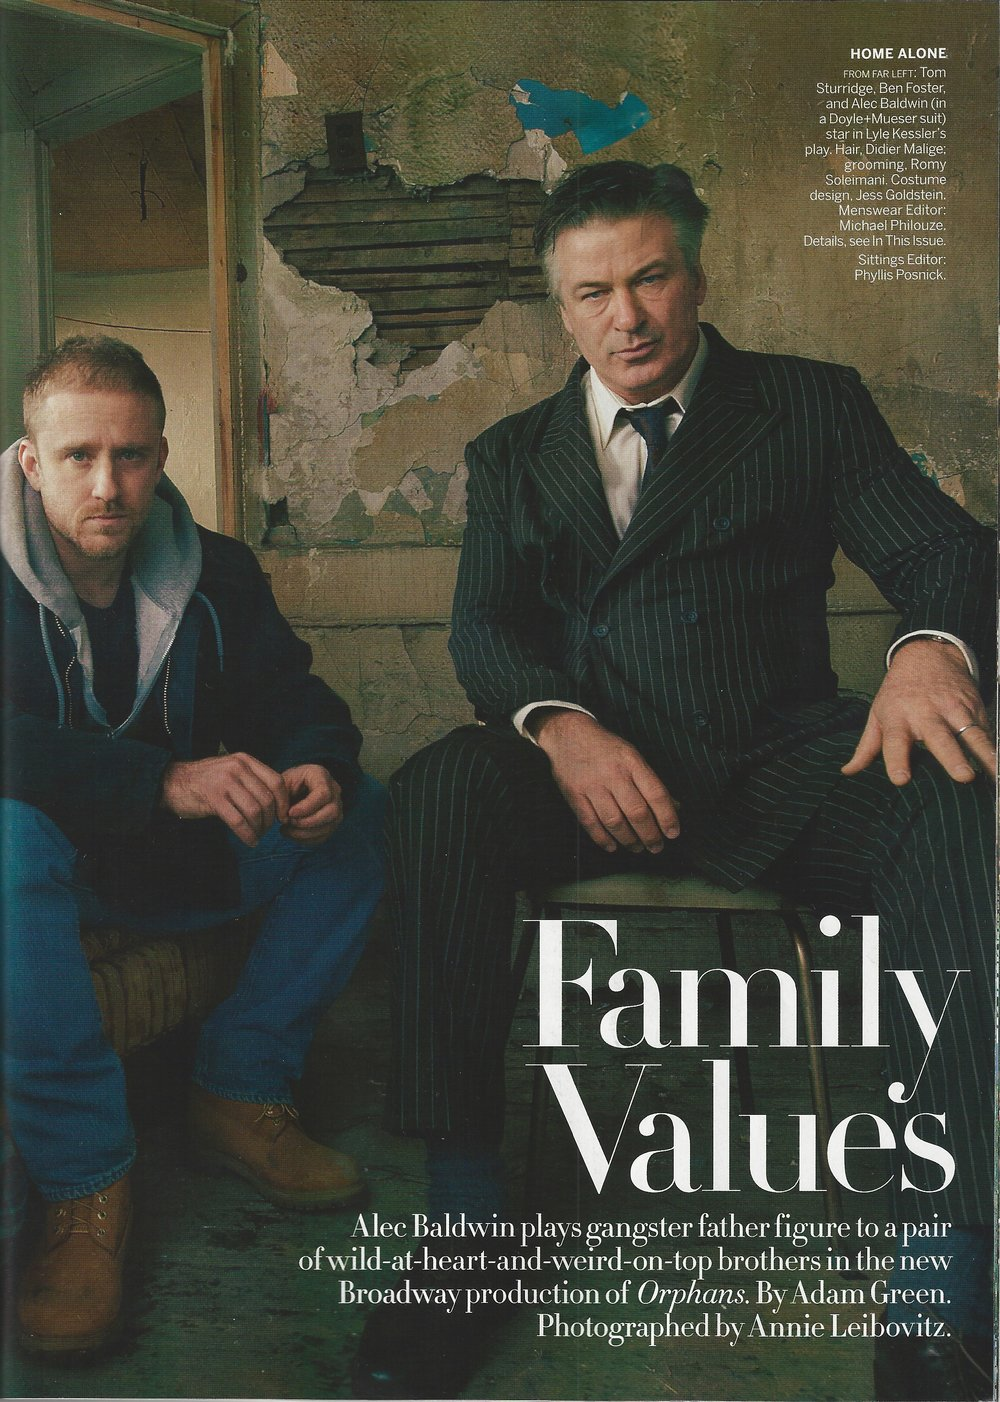 Vogue May 2013 - Alec Baldwin Doyle+Mueser.jpg